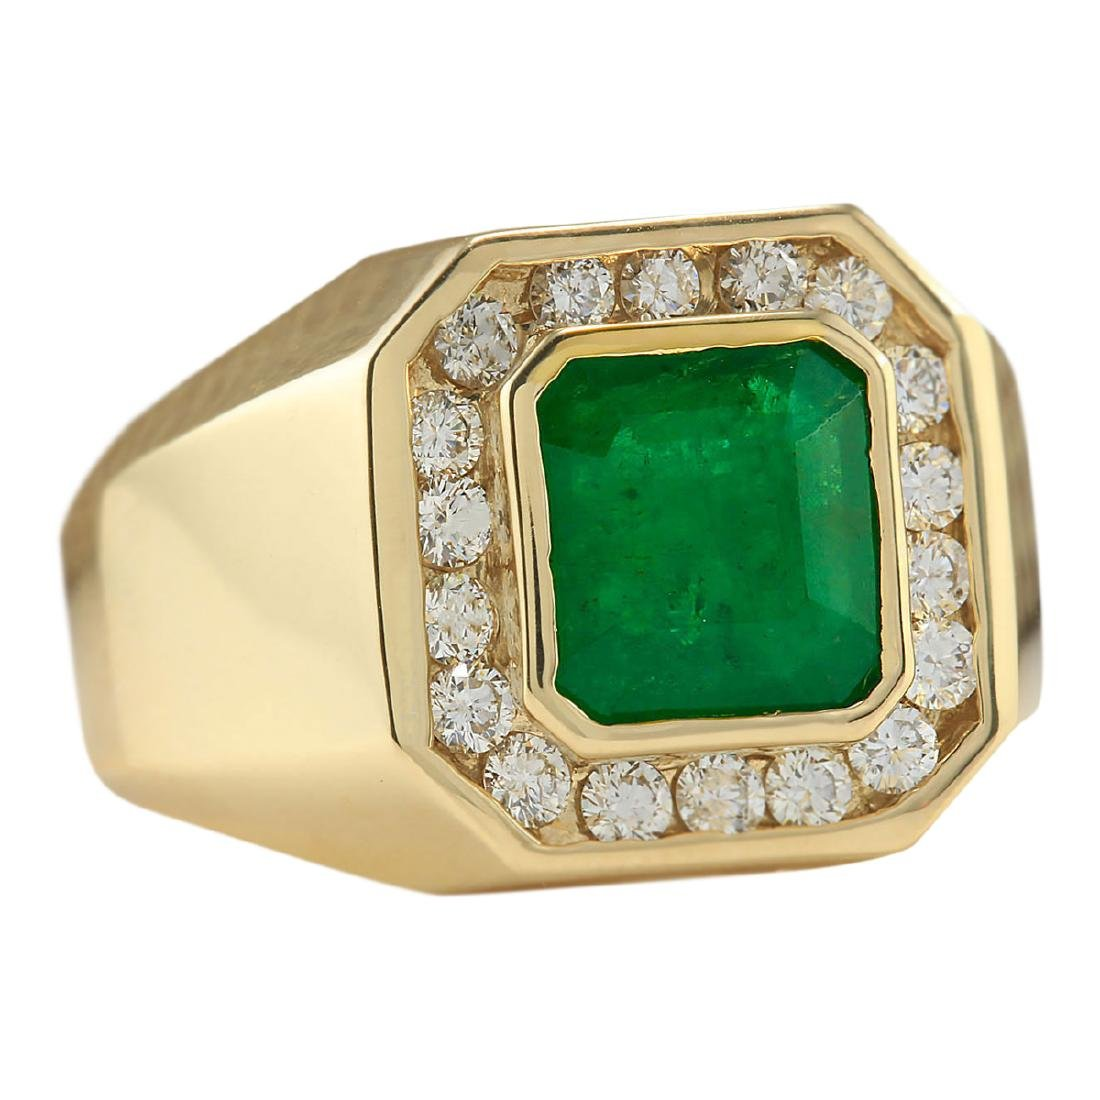 4.26 CTW Natural Emerald And Diamond Ring In 18K Yellow - 2